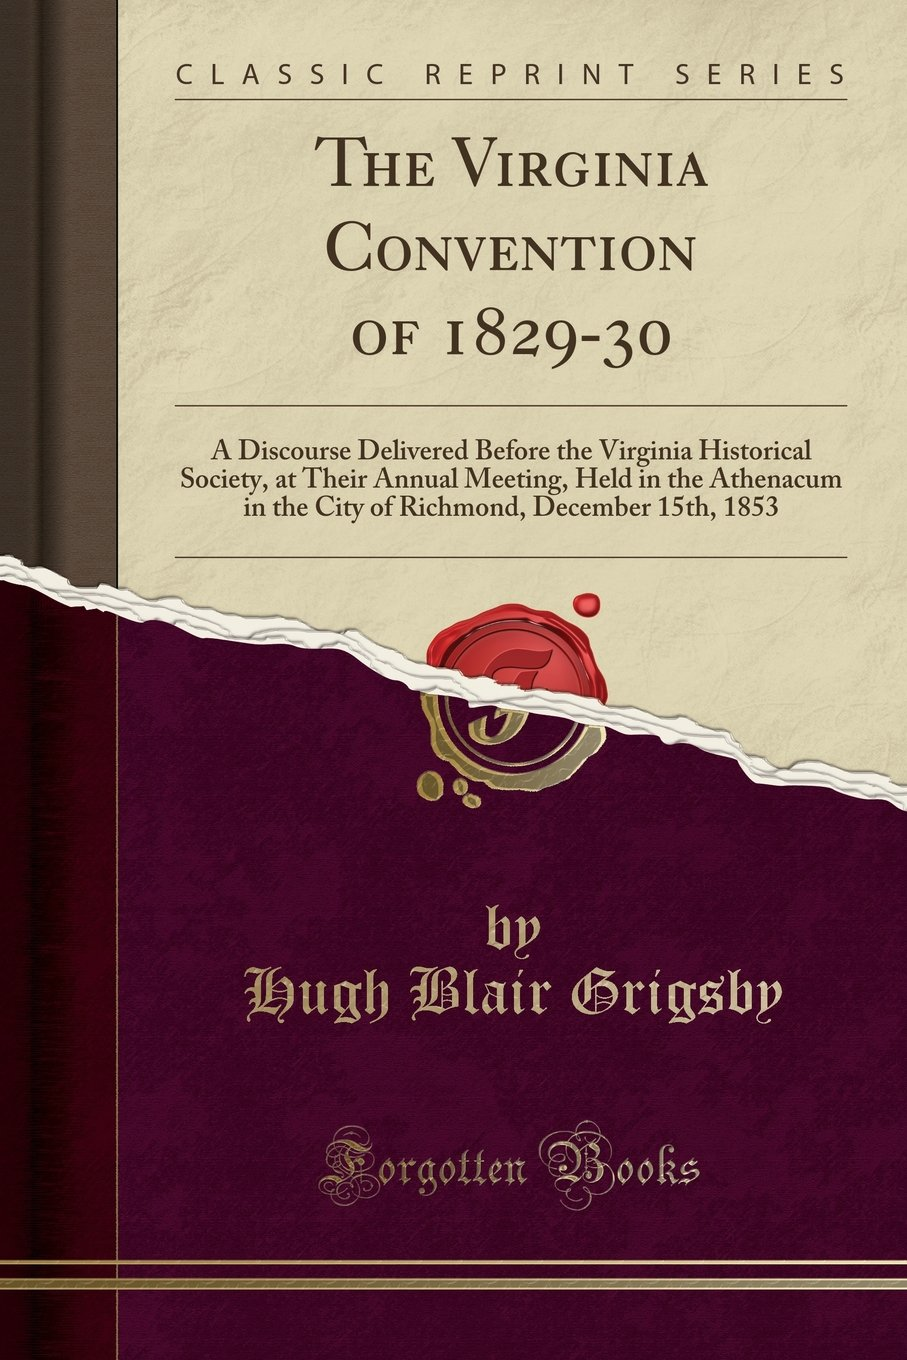 Read Online The Virginia Convention of 1829-30: A Discourse Delivered Before the Virginia Historical Society, at Their Annual Meeting, Held in the Athenacum in ... December 15th, 1853 (Classic Reprint) ebook